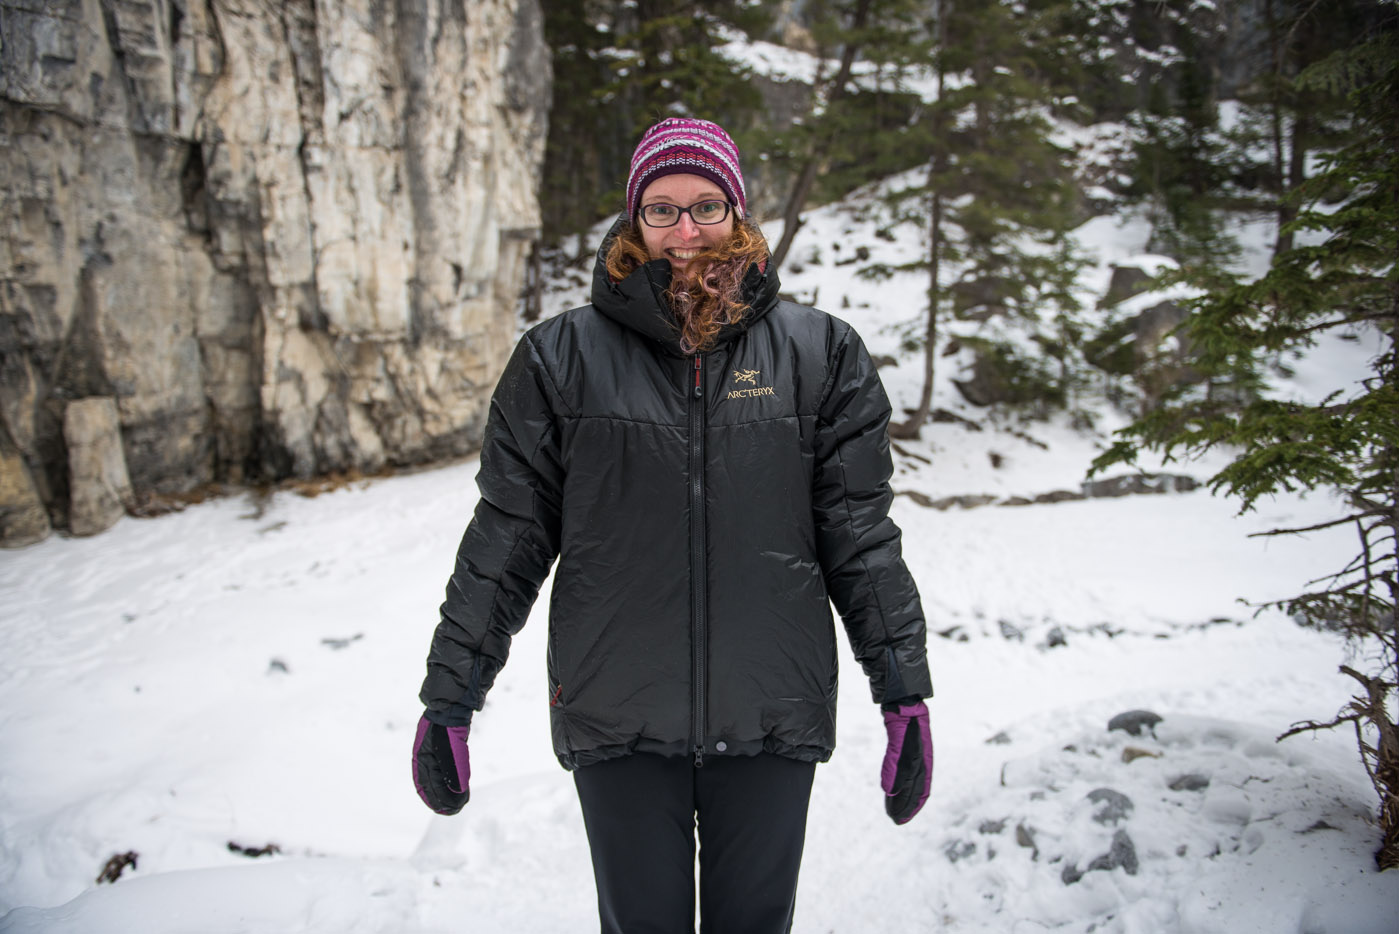 Easily big enough to fit over multiple winter layers, or even other belay jackets. (In this picture, Meg is also wearing the Cerium LT Hoody underneath